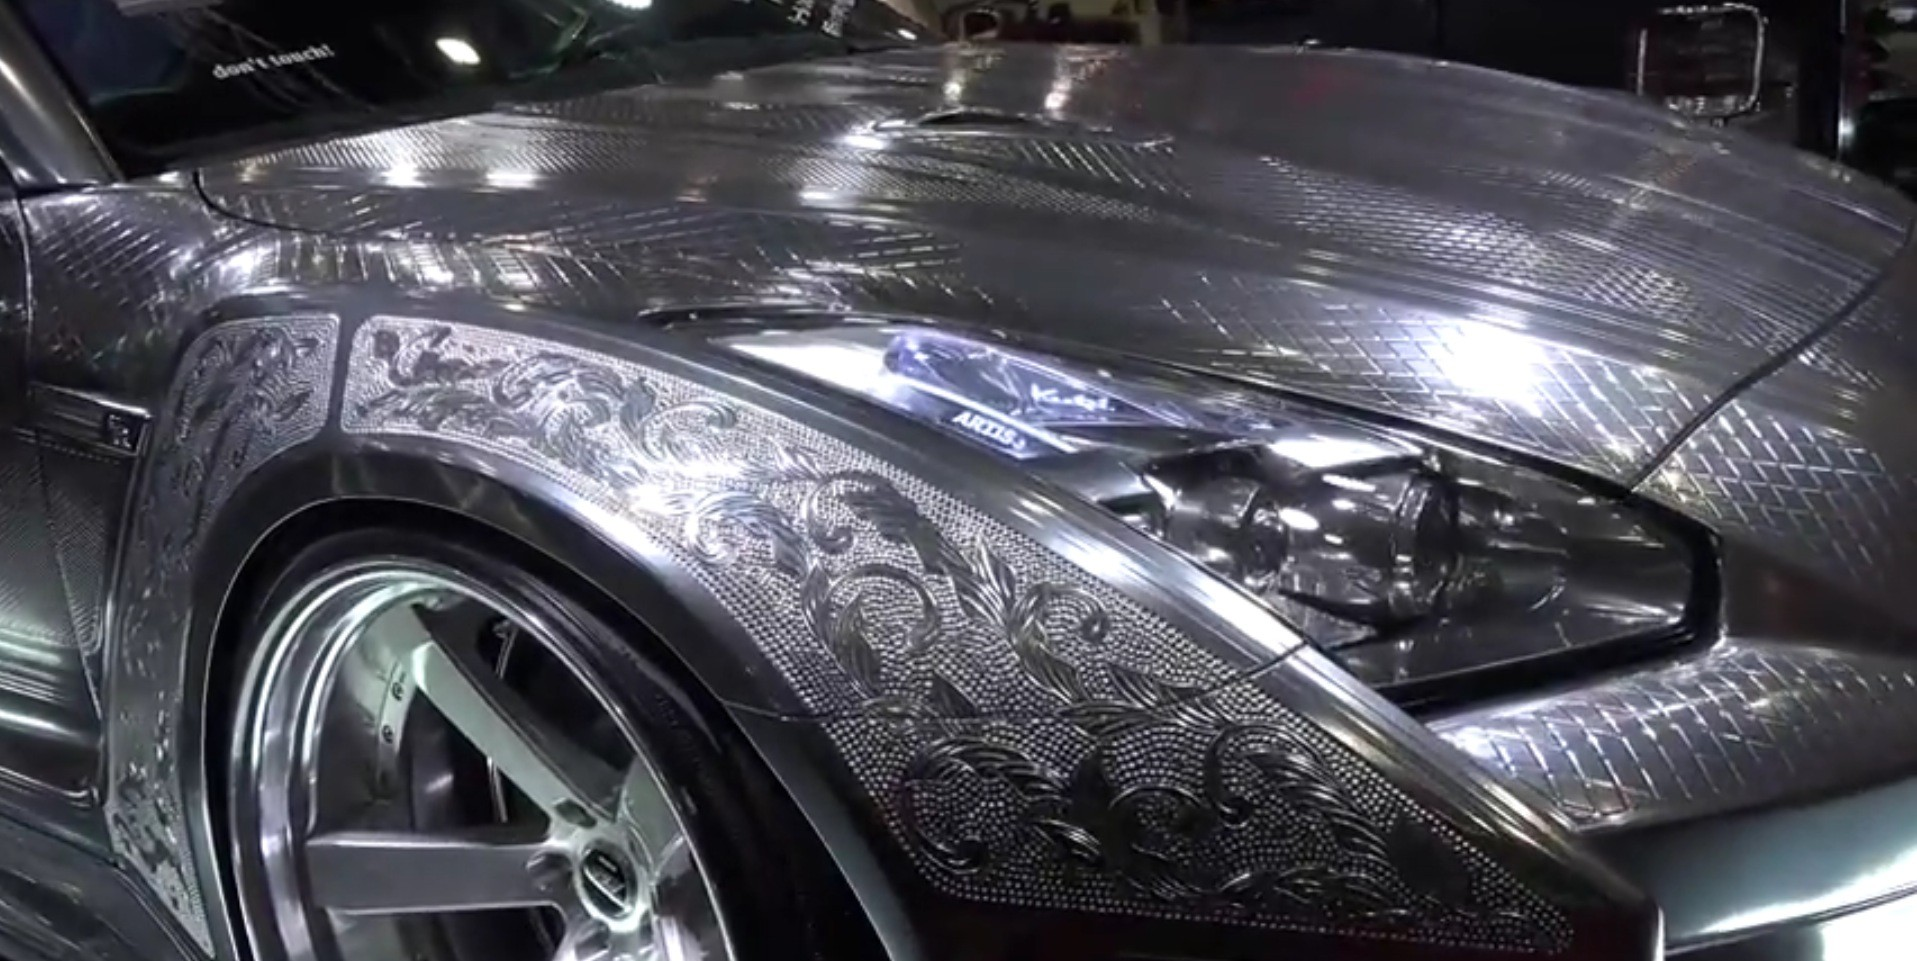 Winter Tires For Sale >> Nissan GT-R with Engraved Silver Body by KUHL Is Needlessly Awesome - autoevolution